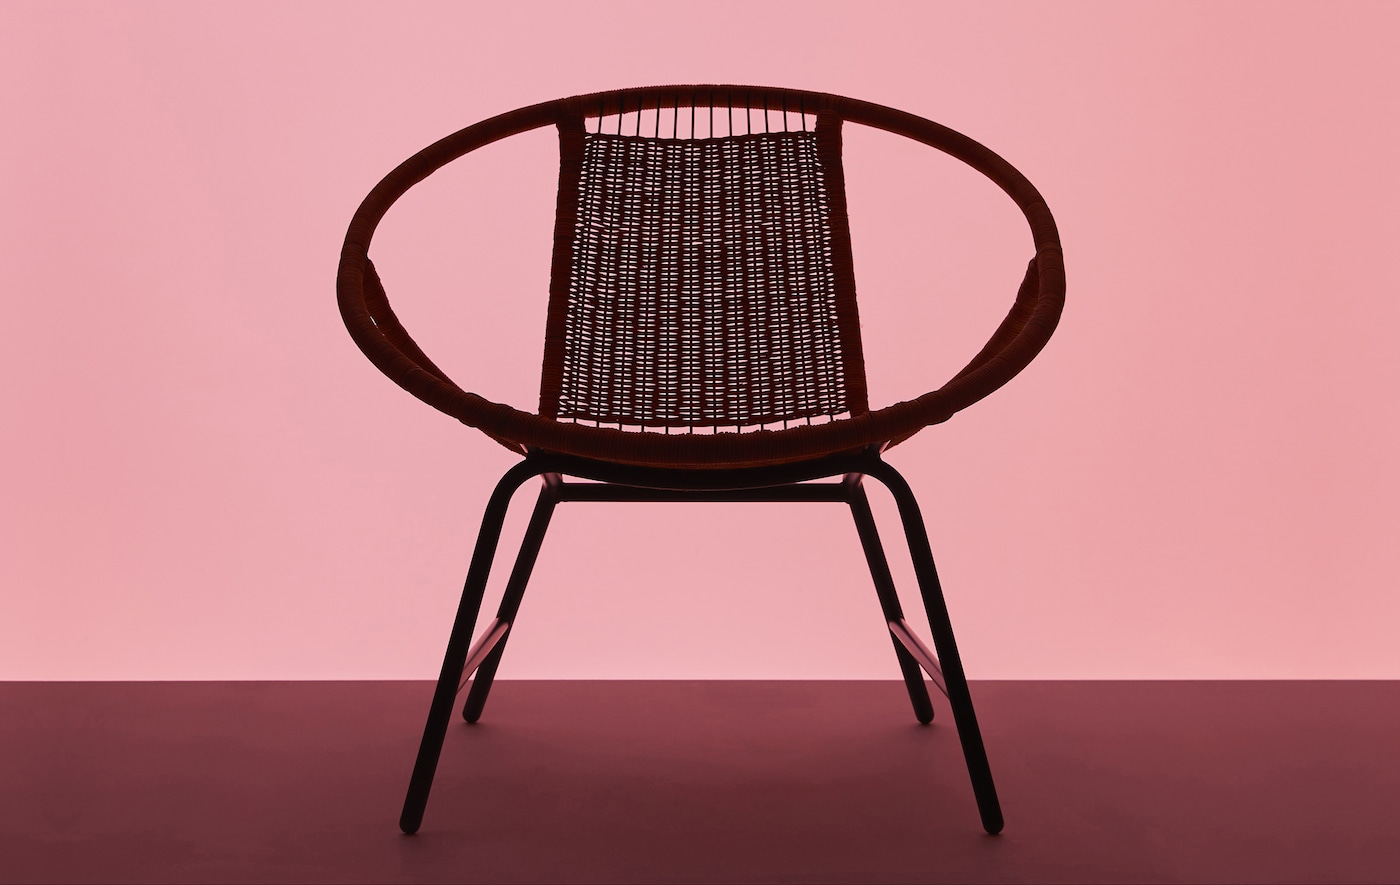 Silhouette of a GAGNET armchair on a pink background.